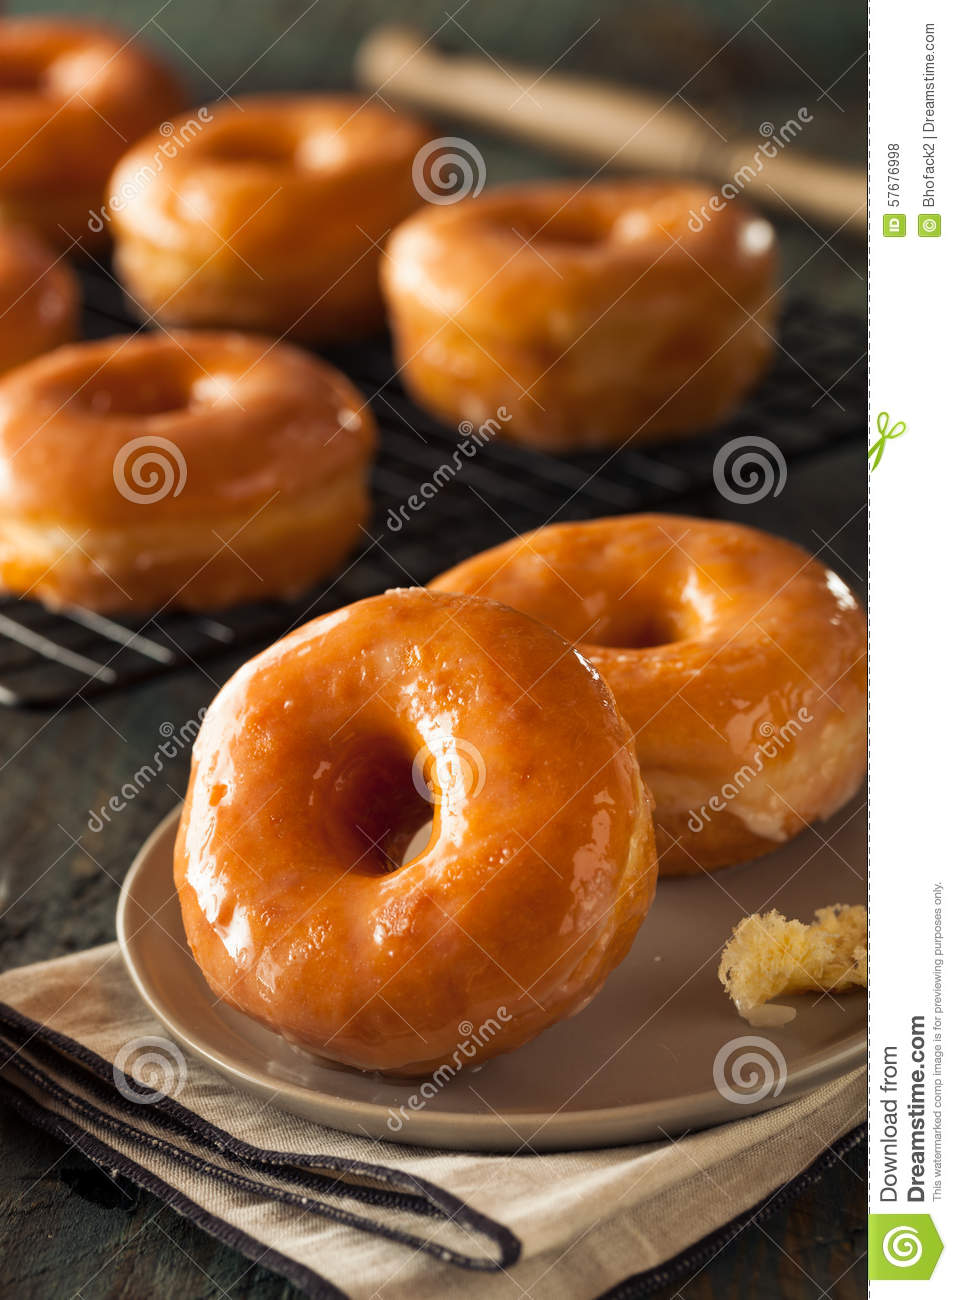 how to make homemade glazed donuts